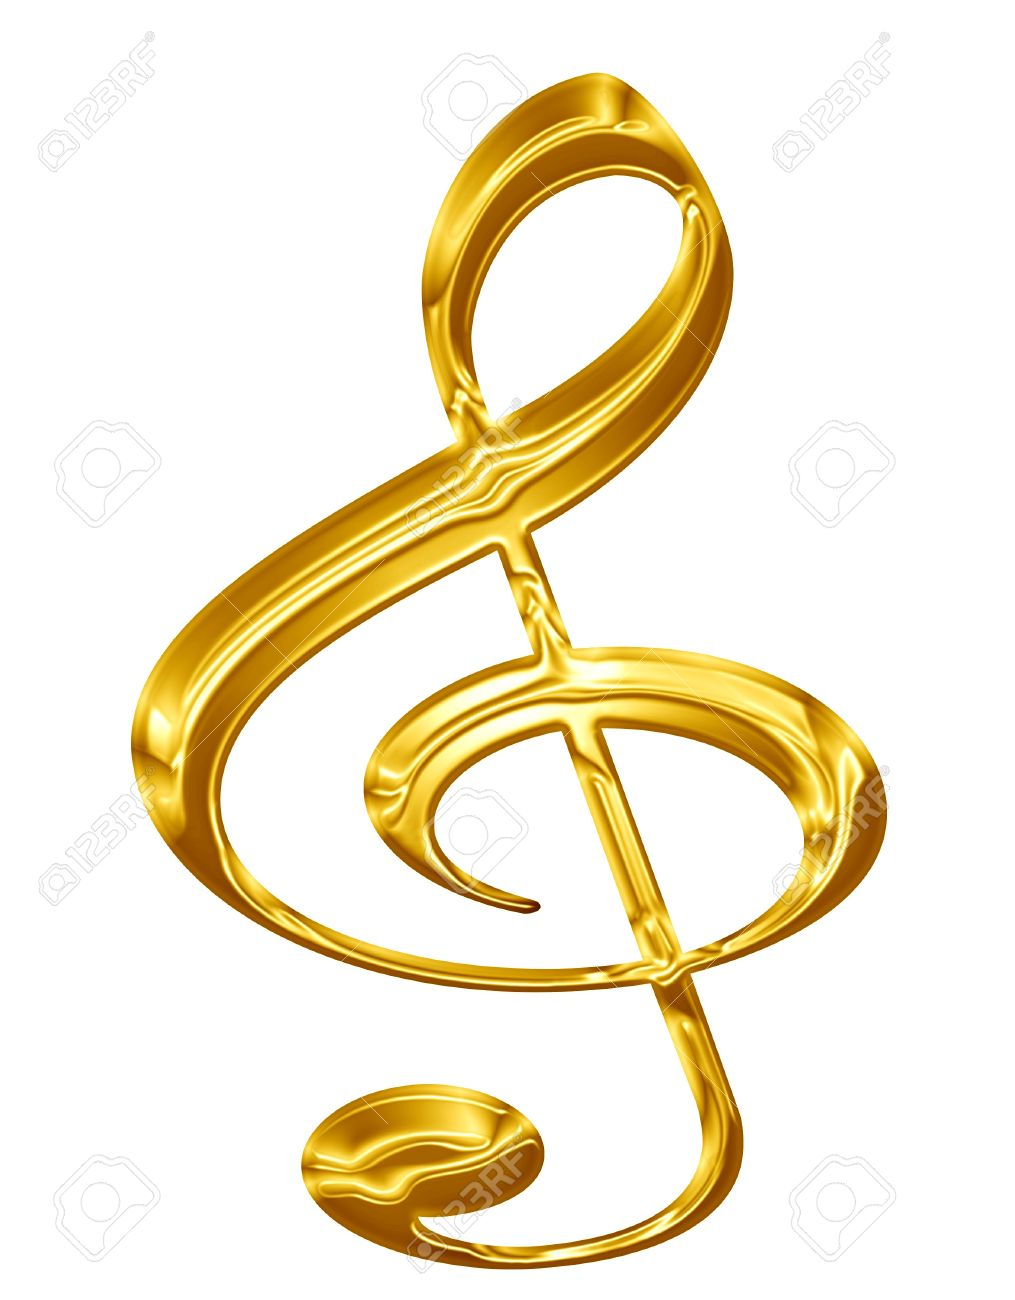 Golden music note on a solid white background stock photo picture golden music note on a solid white background stock photo 14669927 altavistaventures Images